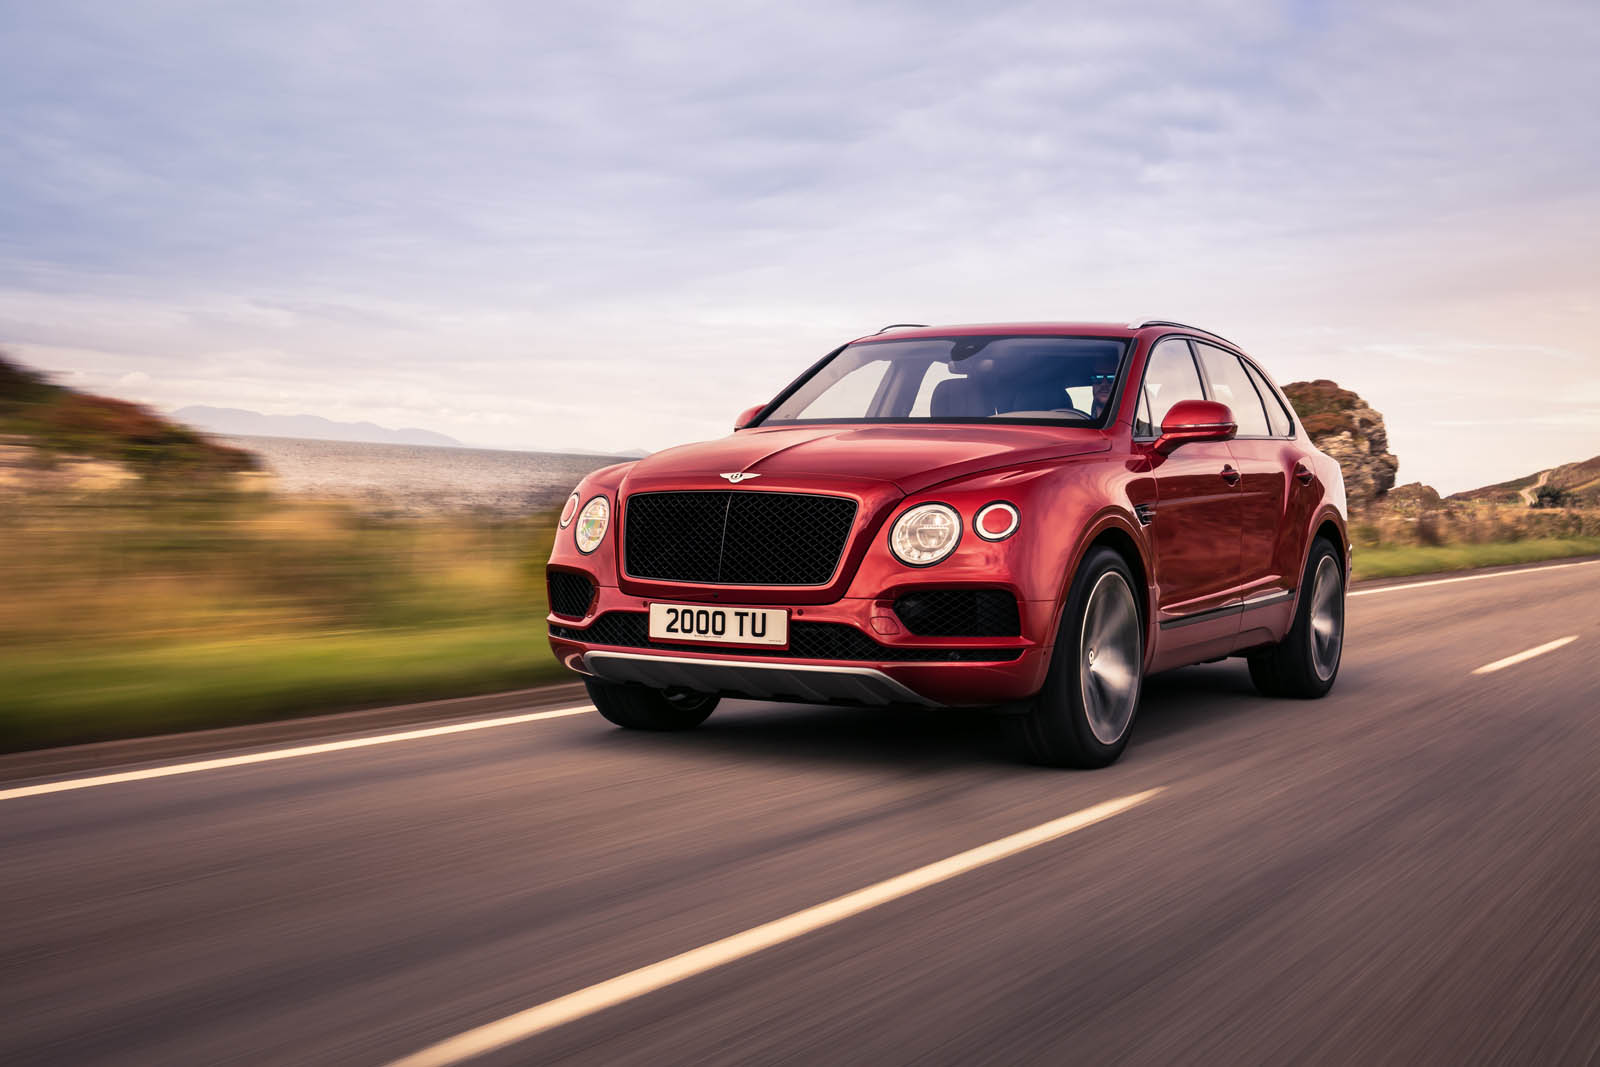 The British luxury car manufacturer Bentley Motors has made a presentation of the high-end Bentayga off-roader